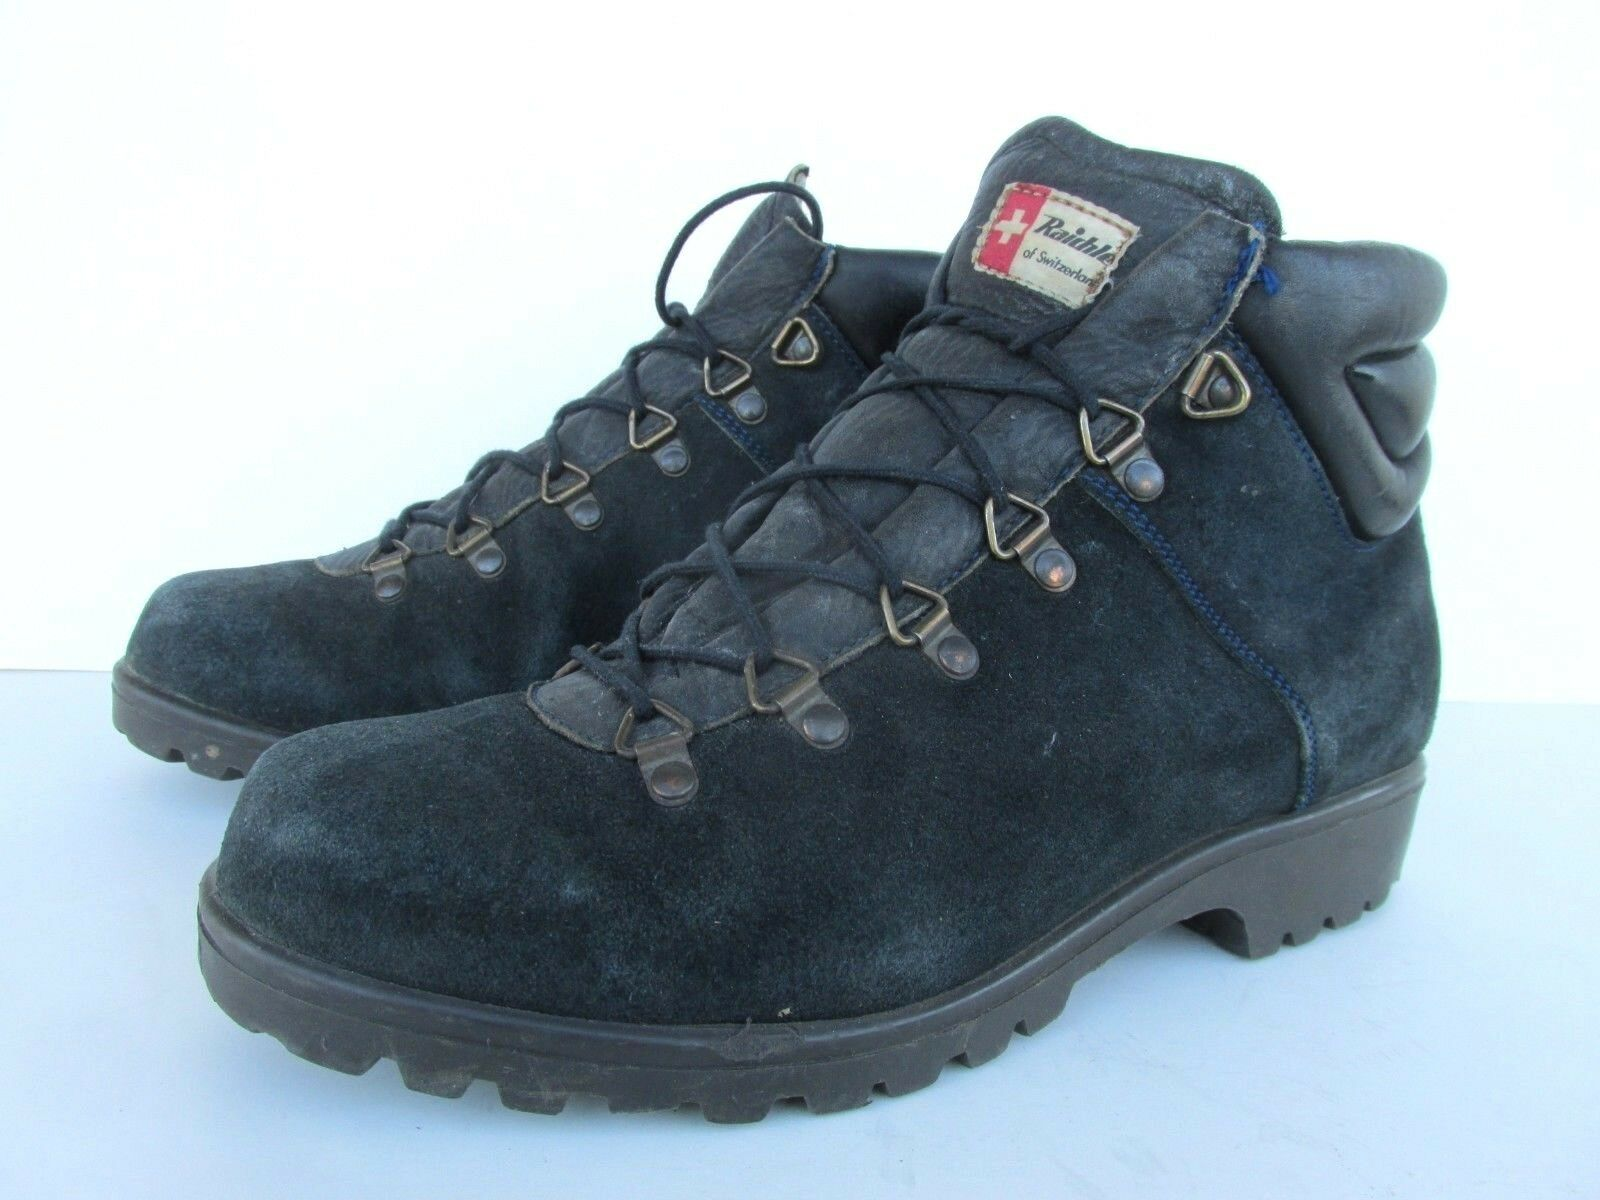 Raichle Vintage Navy Suede Leather Lace Up Hiking Boots Women's 6M